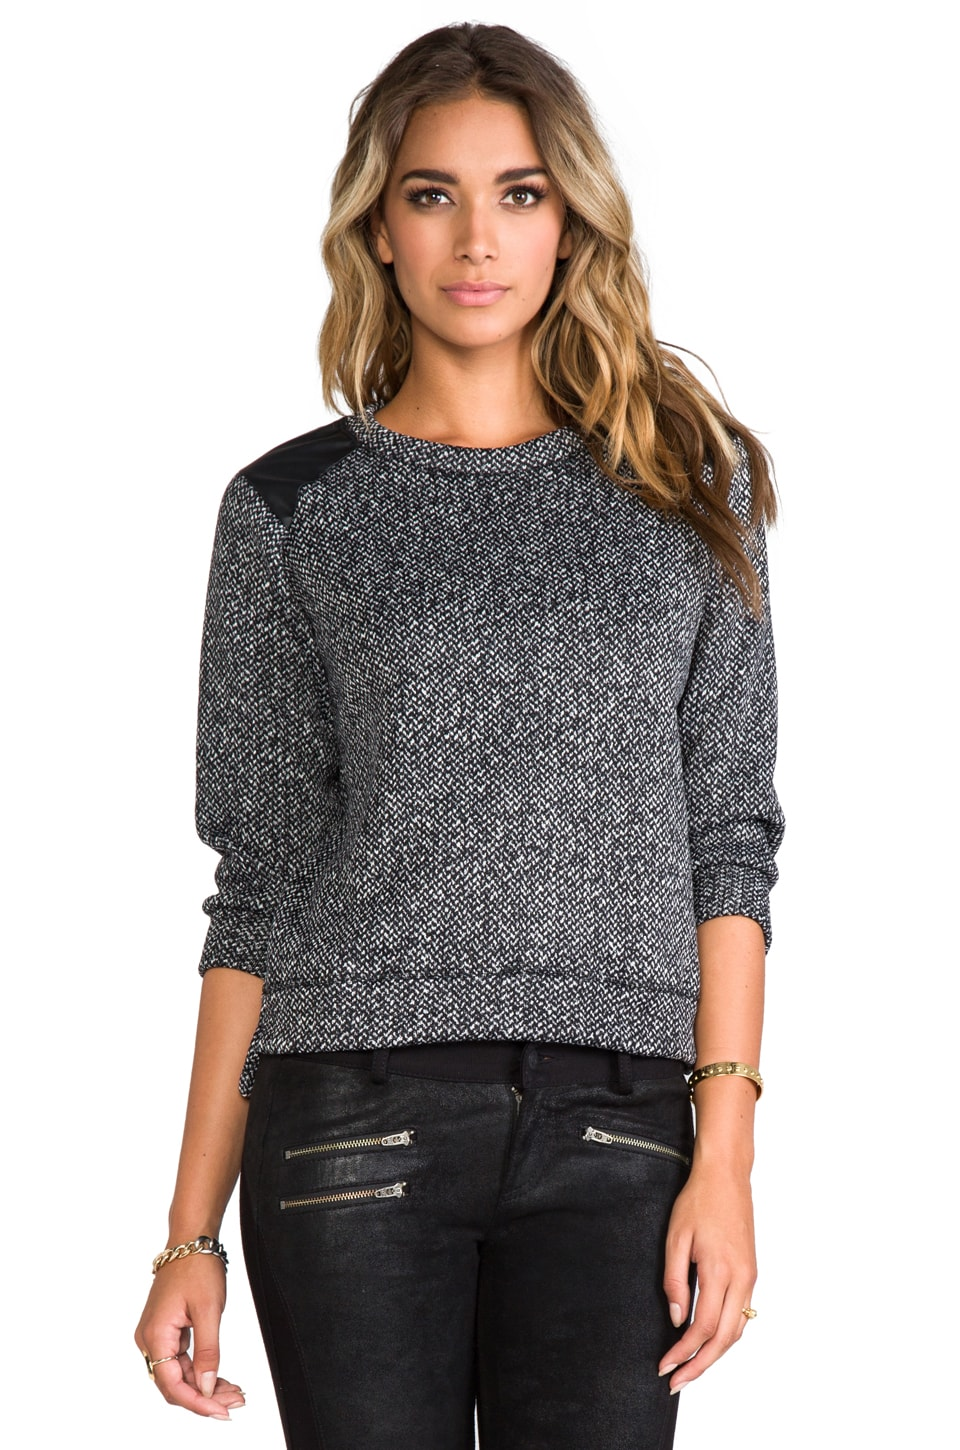 A Fine Line Alexandra Sweatshirt in Tweed